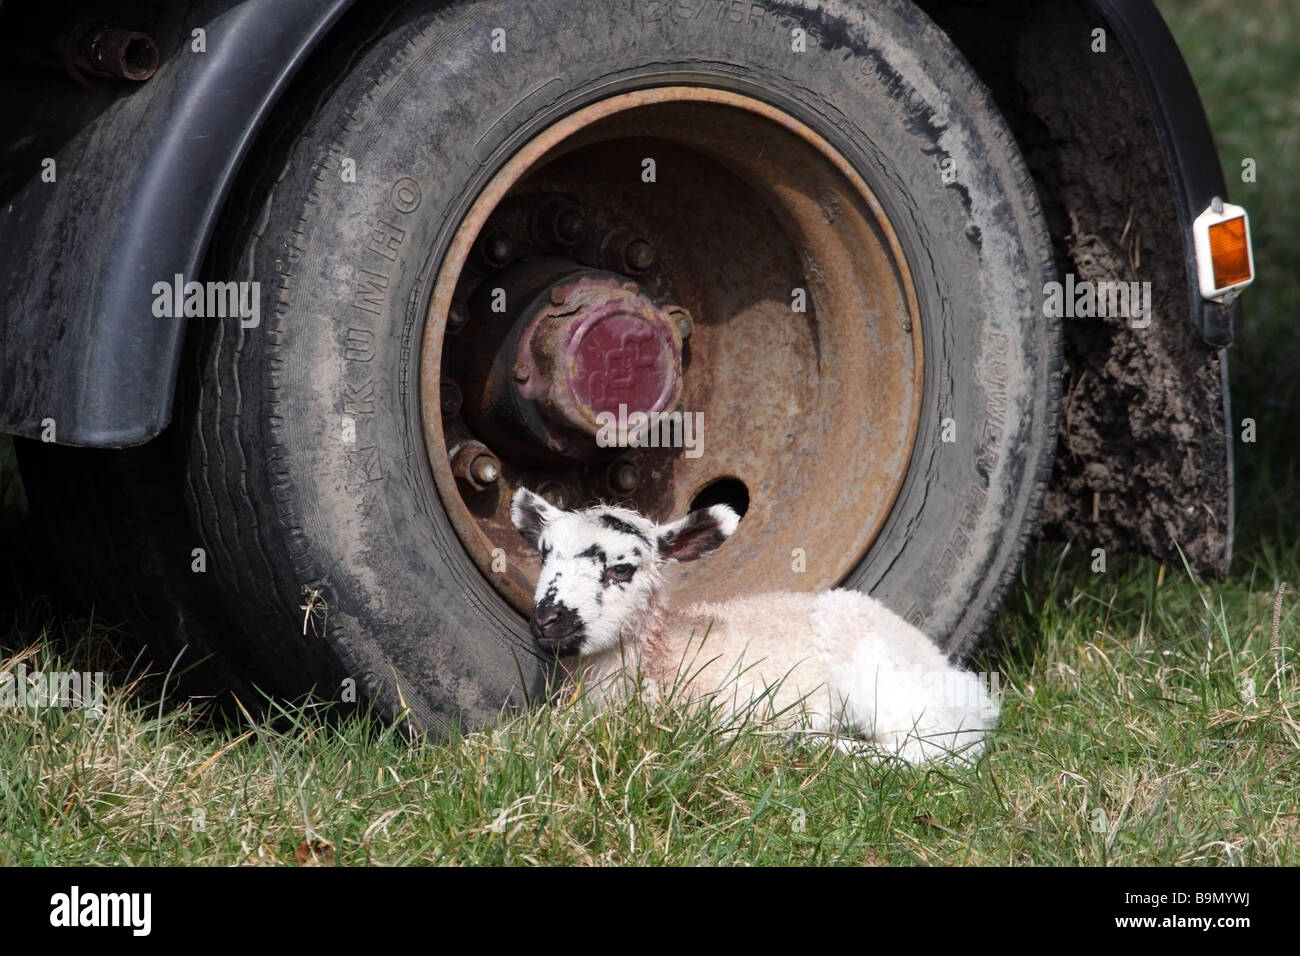 Newborn Lamb Sheltering Next to a the Wheel of a Farm Trailer - Stock Image